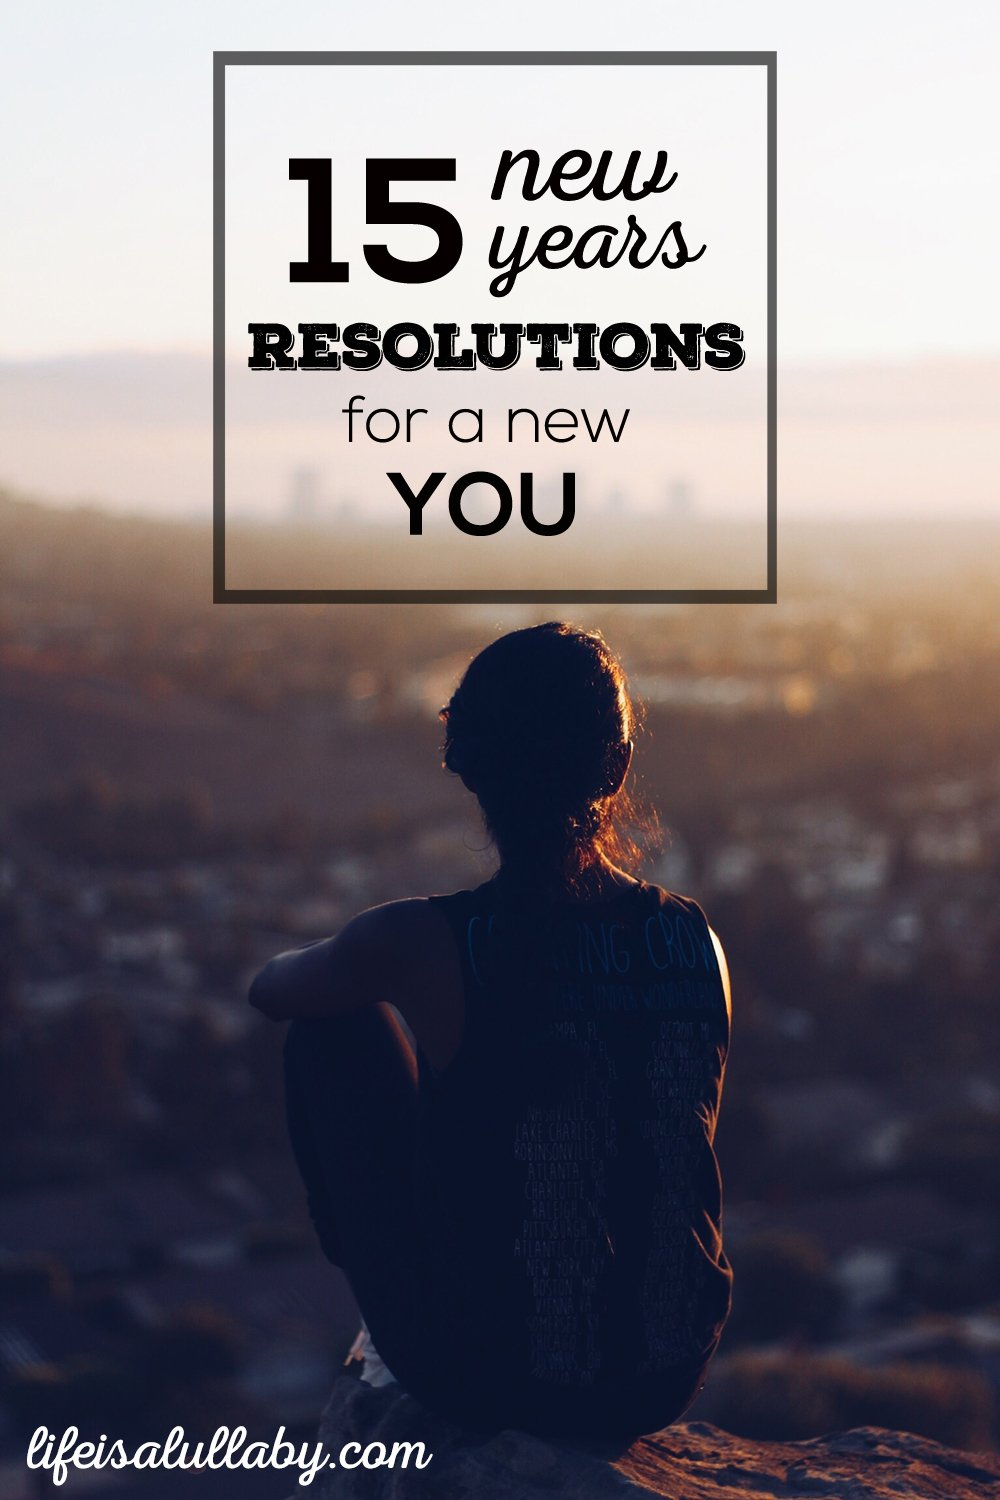 15 New Years Resolutions for a New You